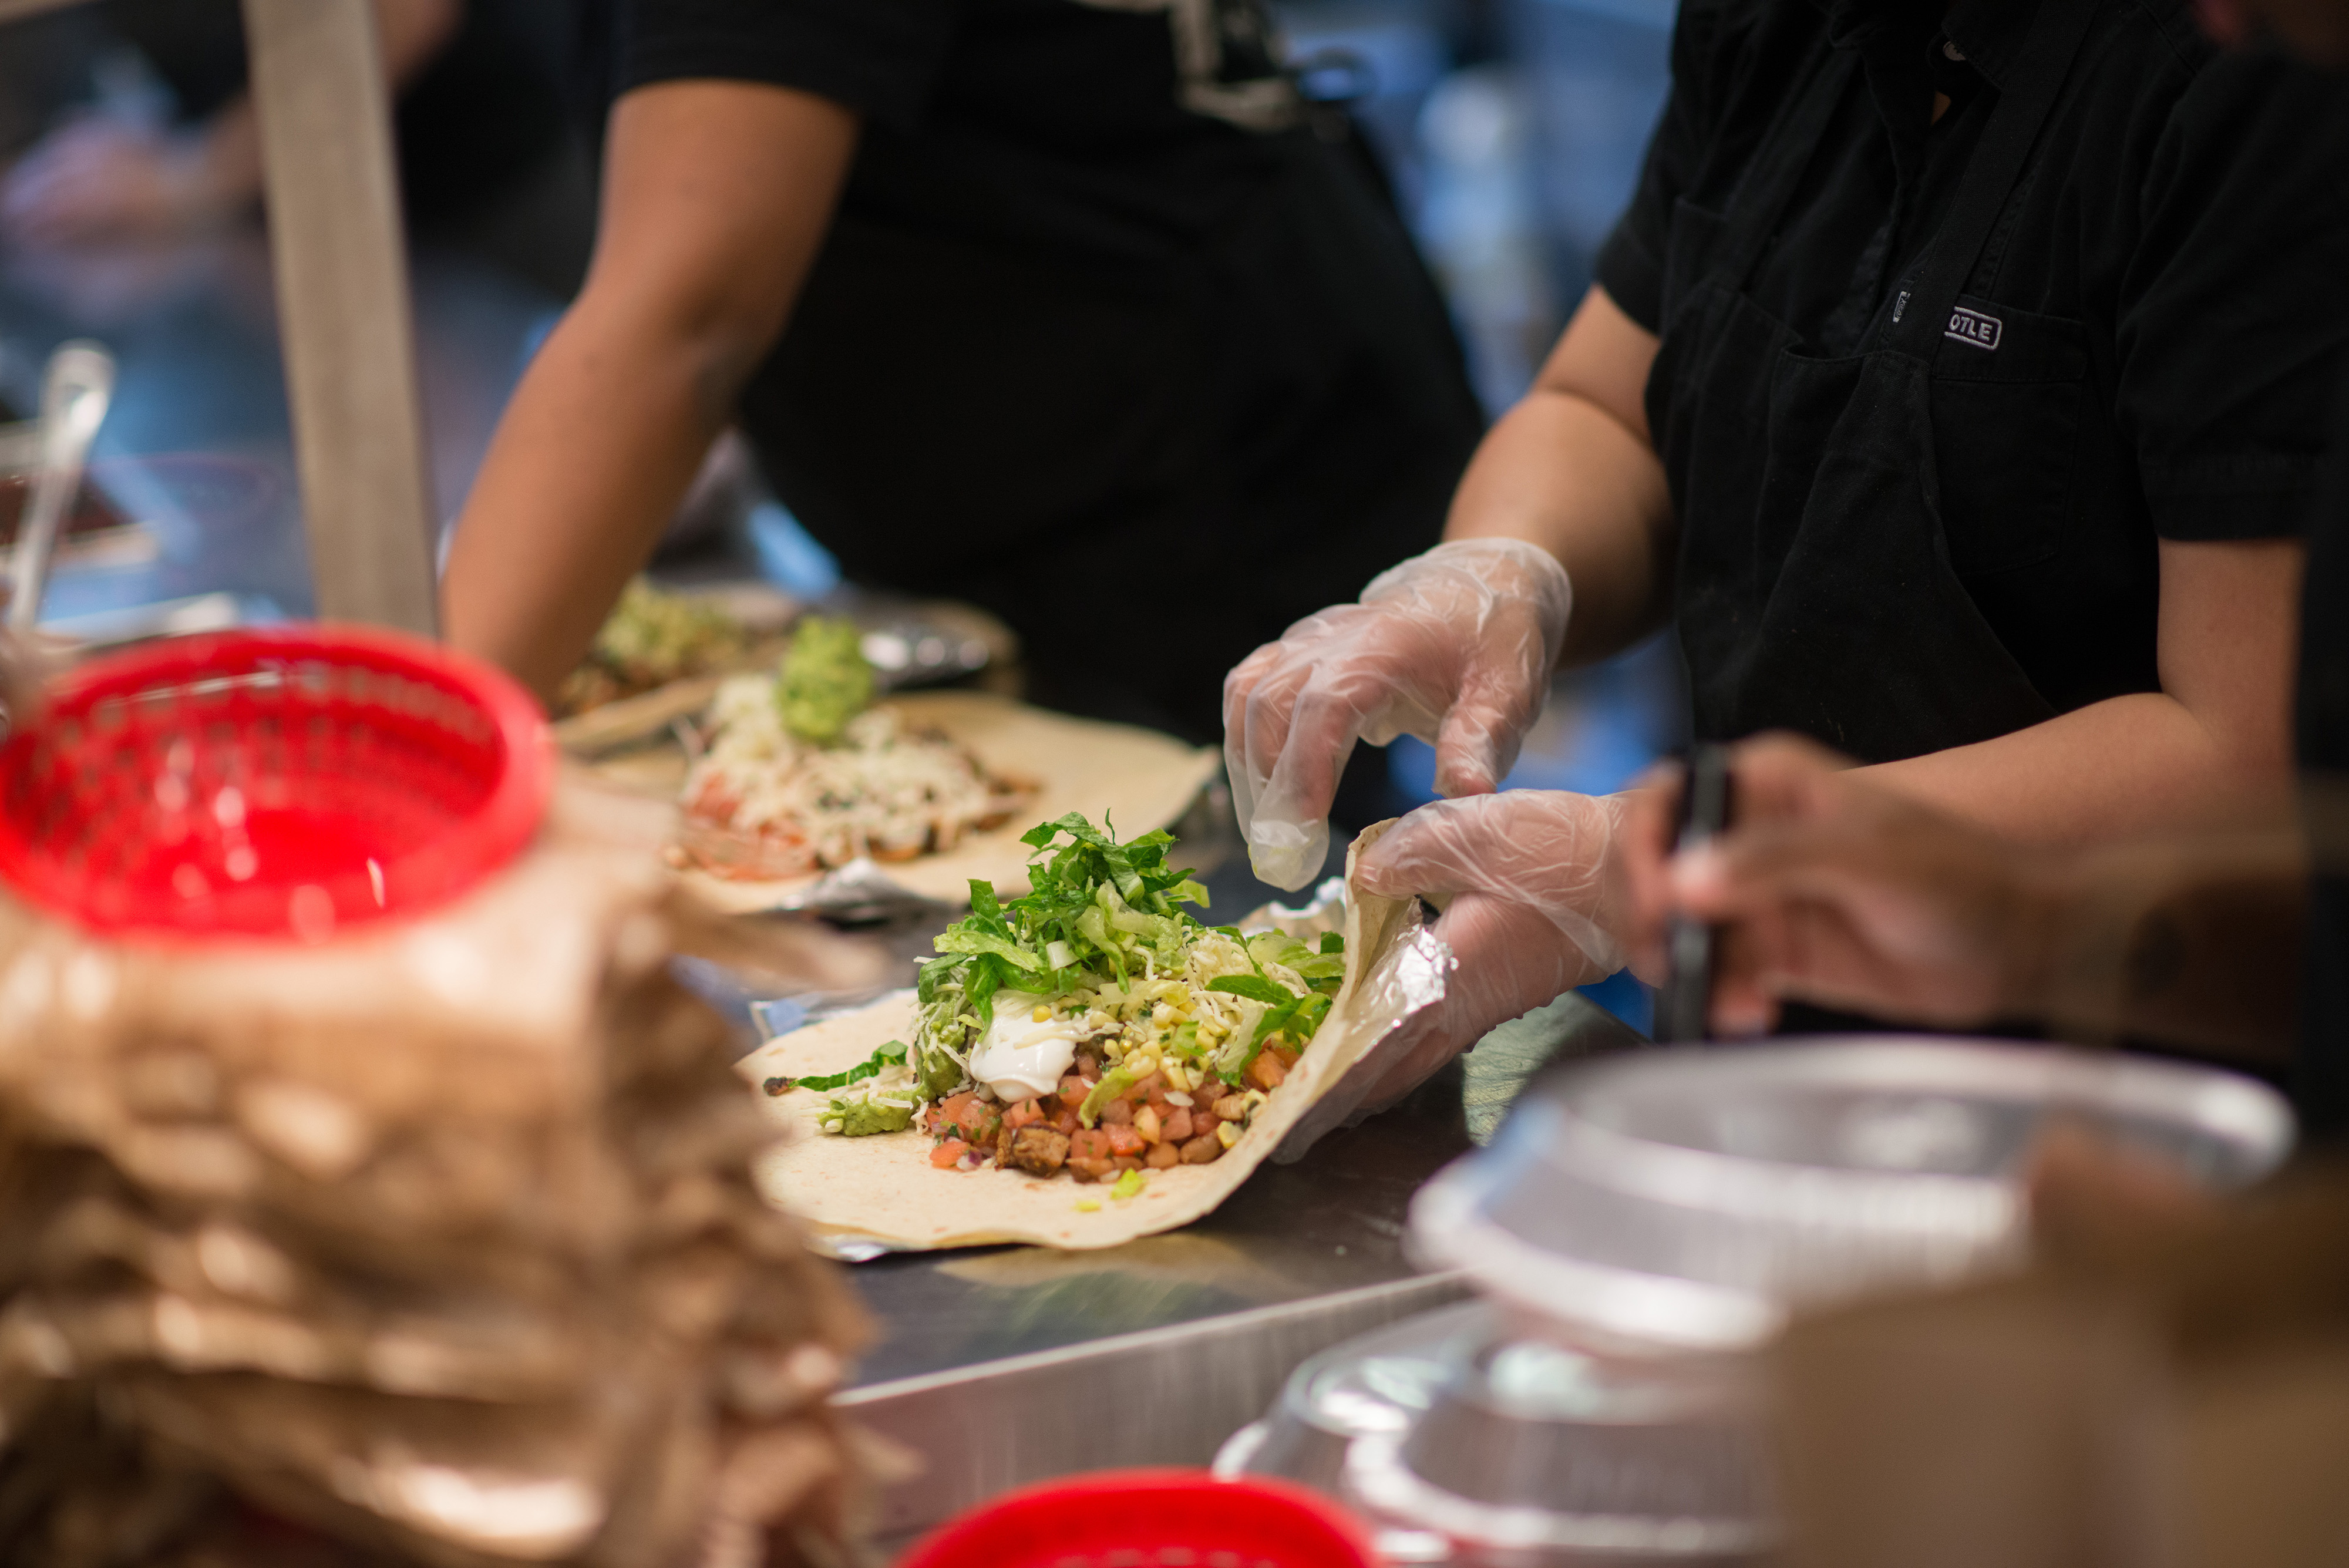 Employees prepare lunch orders at a Chipotle Mexican Grill restaurant at Madison Square Park in New York, U.S., on Wednesday, Jan. 29, 2014.